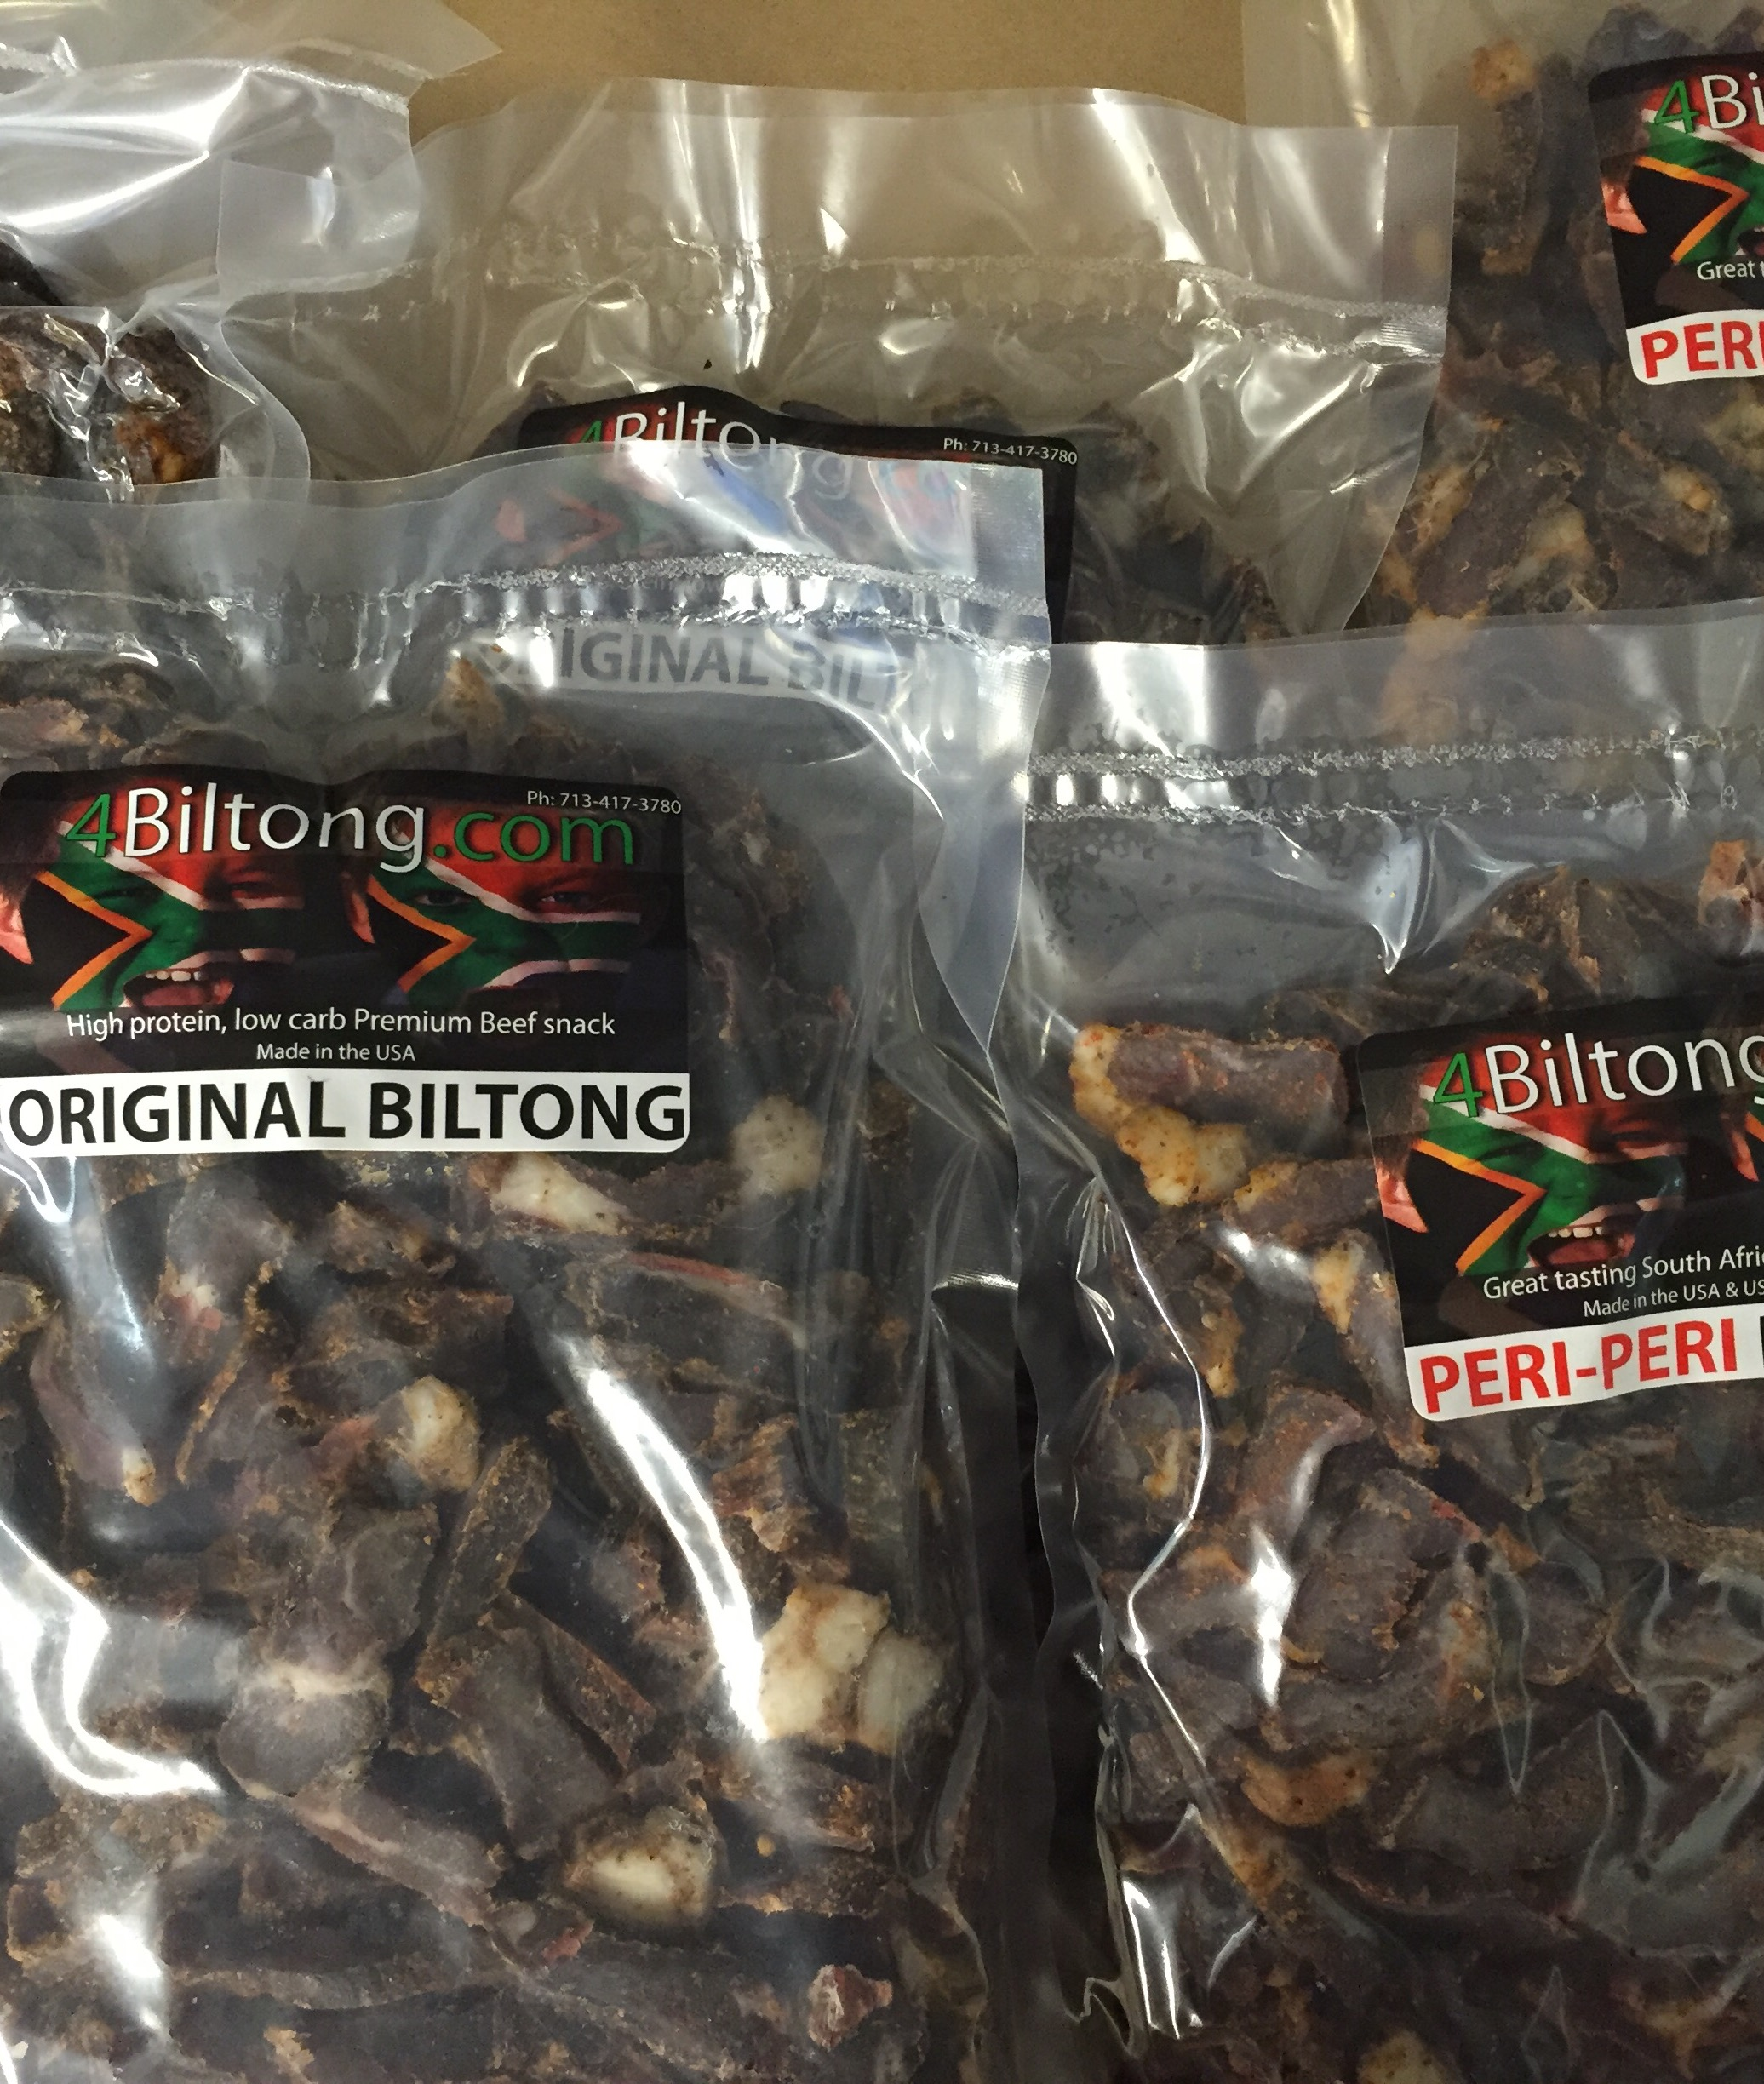 biltong-sliced.jpeg